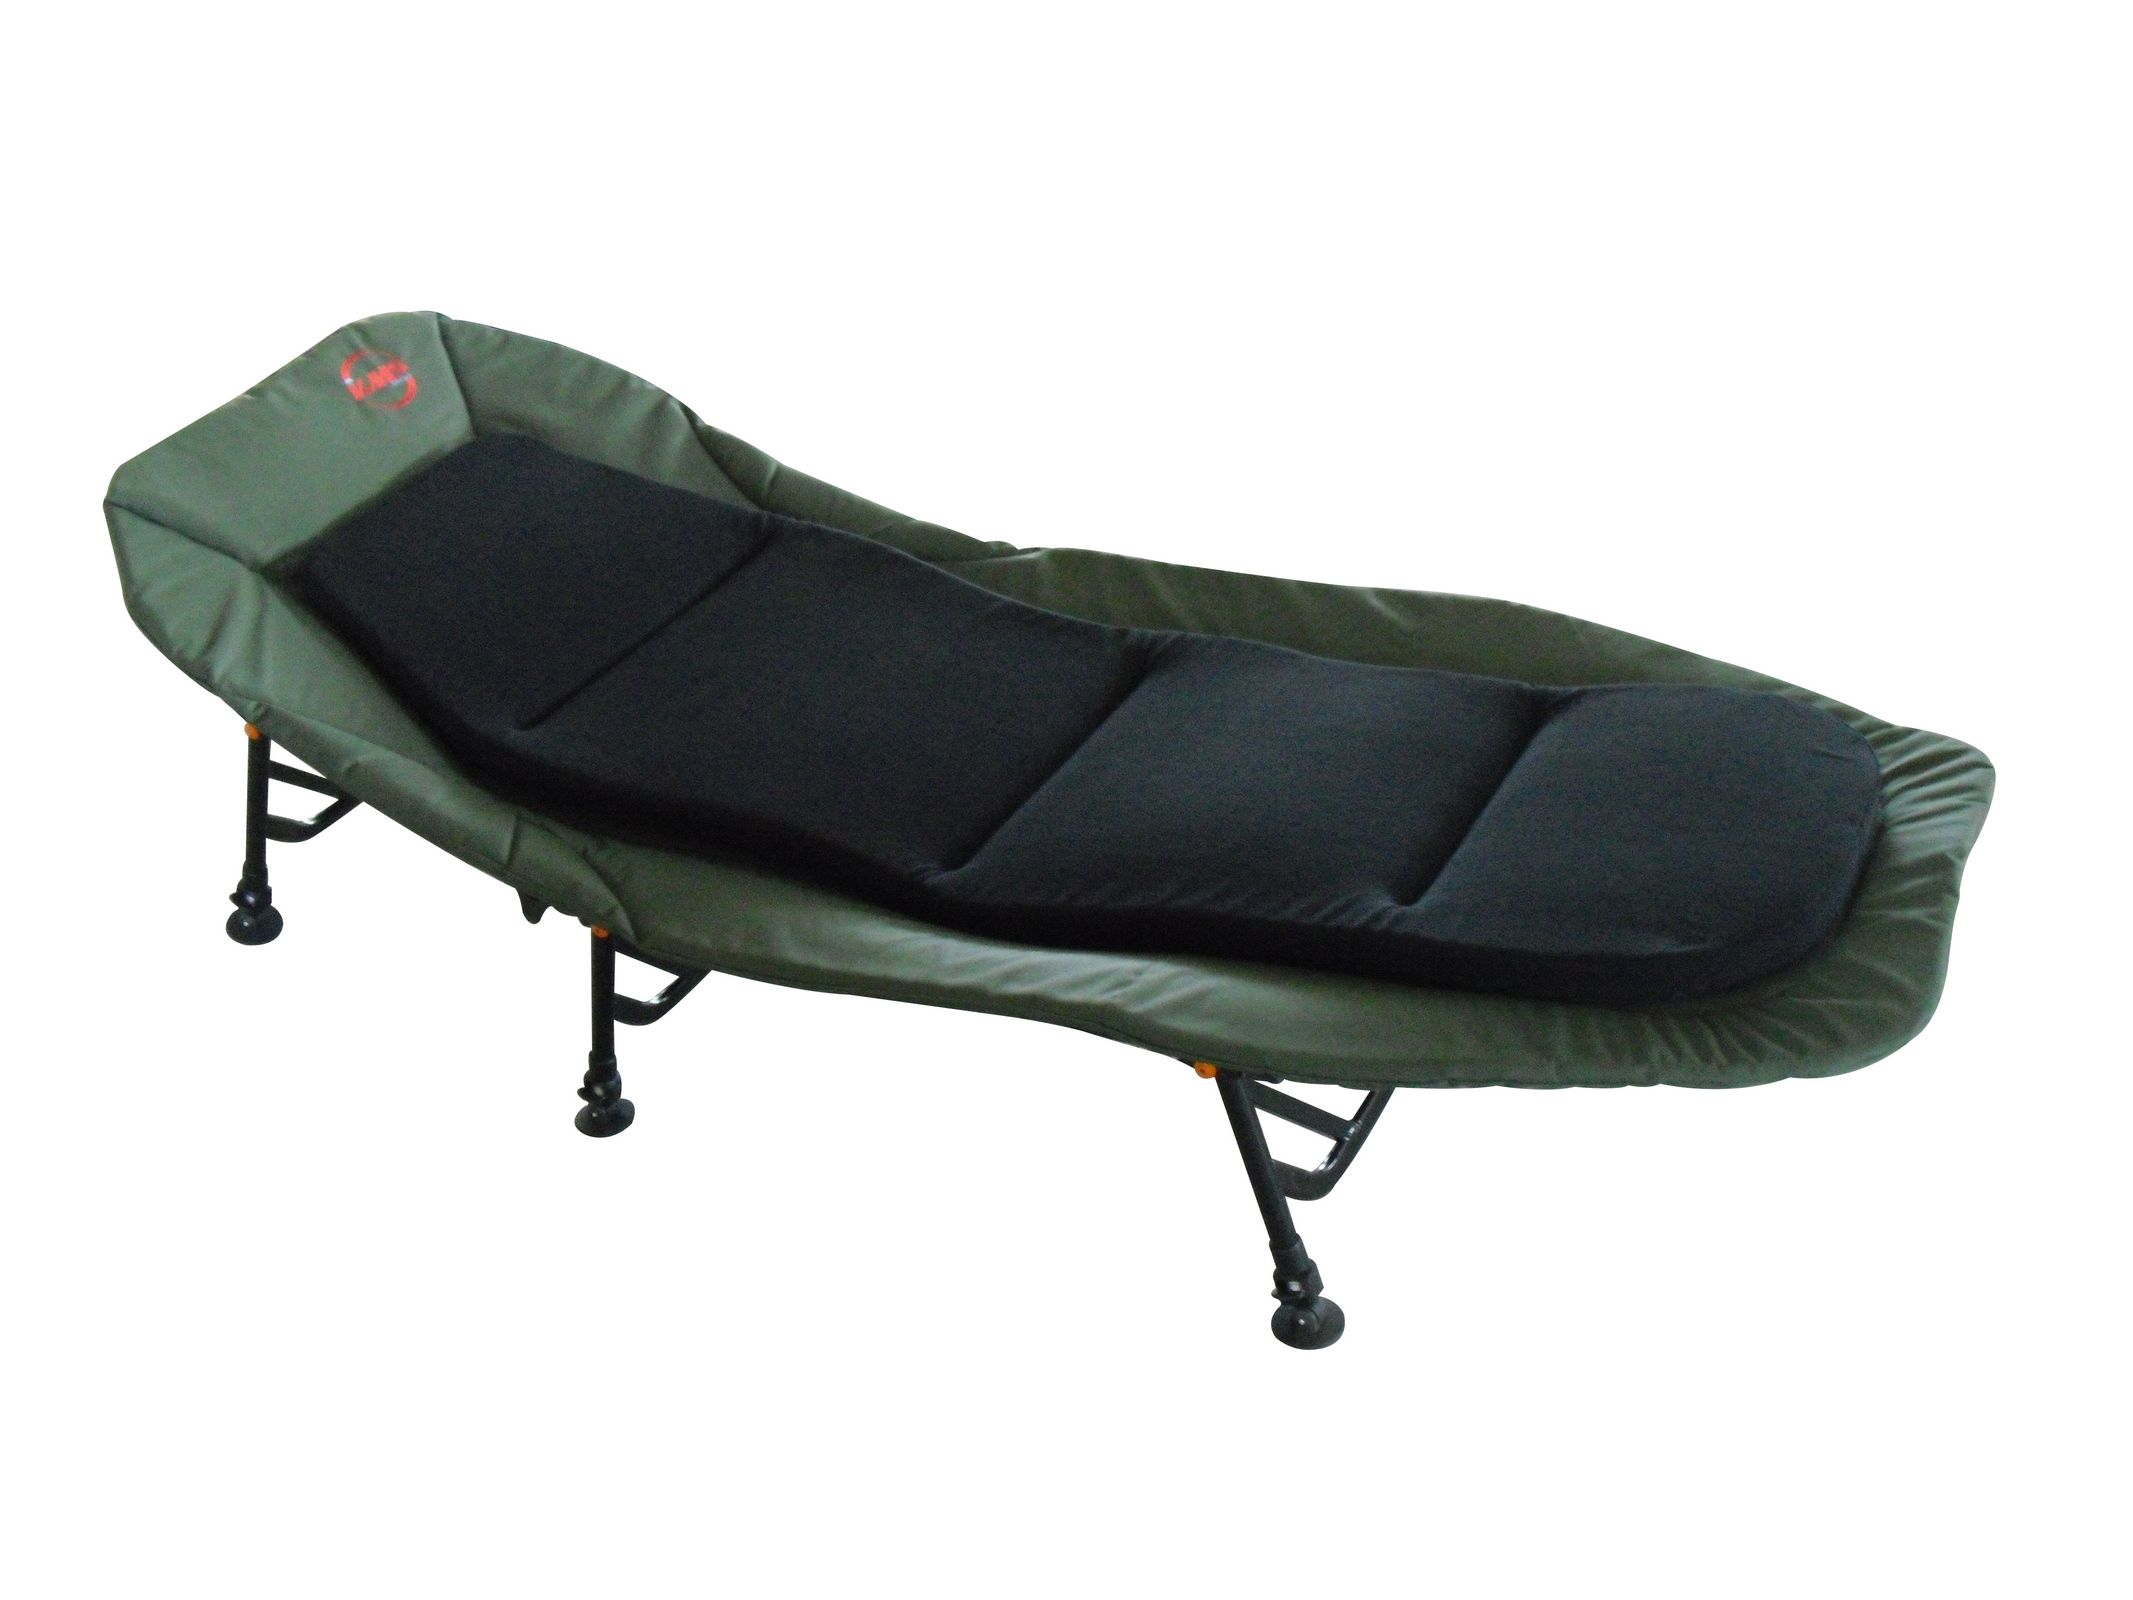 folding chair bed uk heavy duty industrial chairs fishing camping bedchair 6 adjustable legs inner